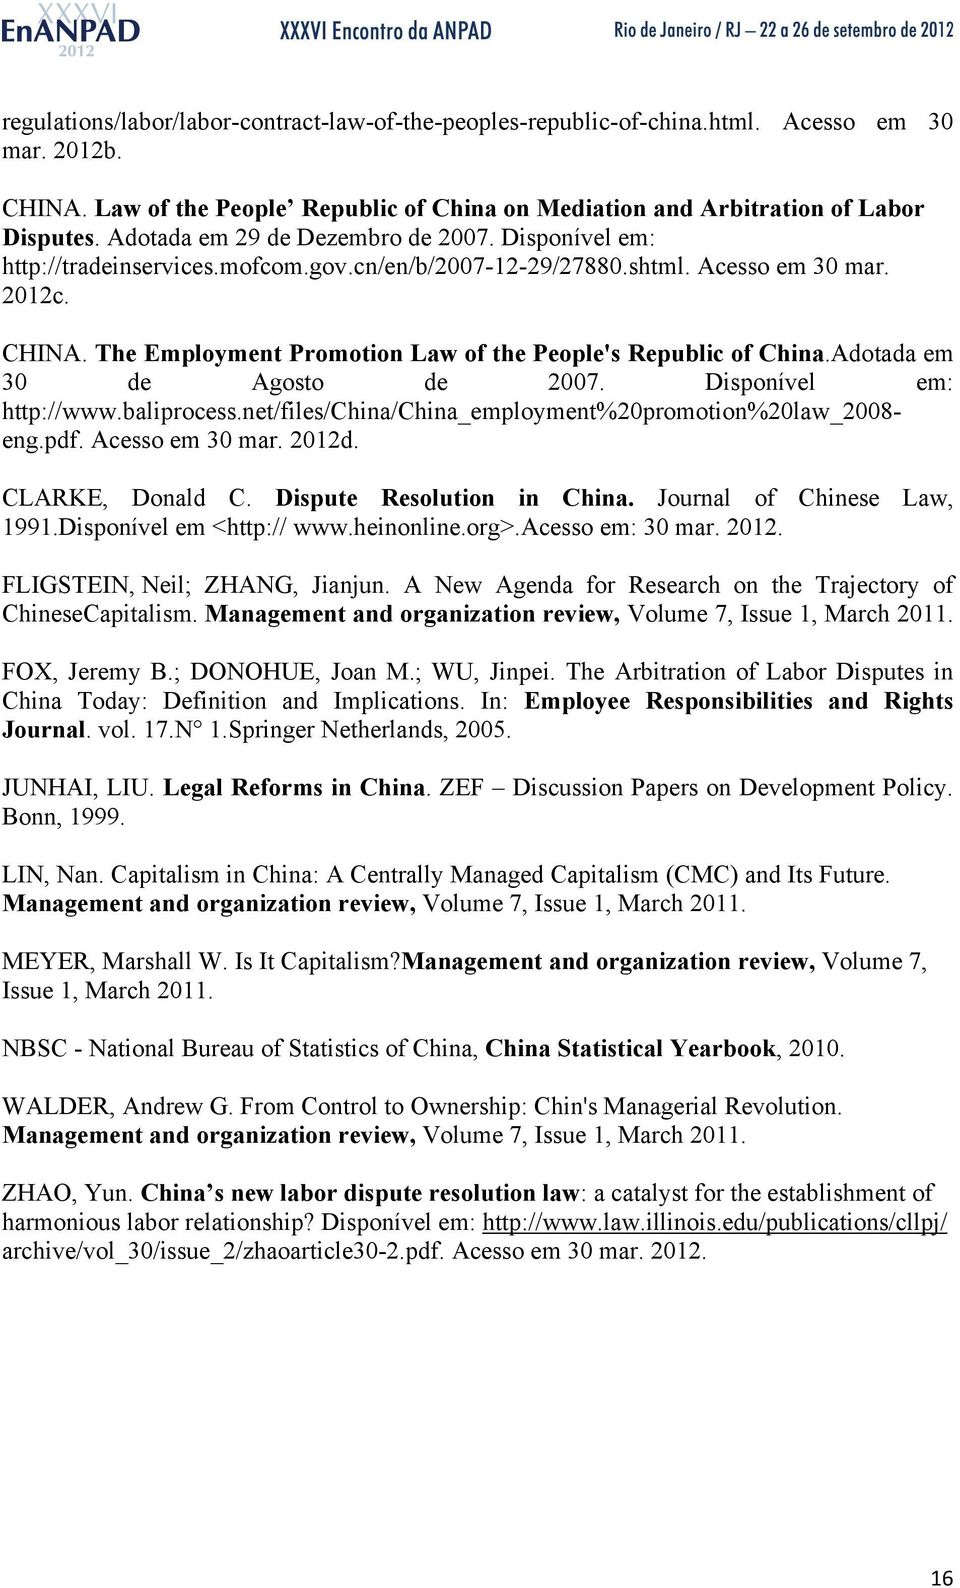 The Employment Promotion Law of the People's Republic of China.Adotada em 30 de Agosto de 2007. Disponível em: http://www.baliprocess.net/files/china/china_employment%20promotion%20law_2008- eng.pdf.